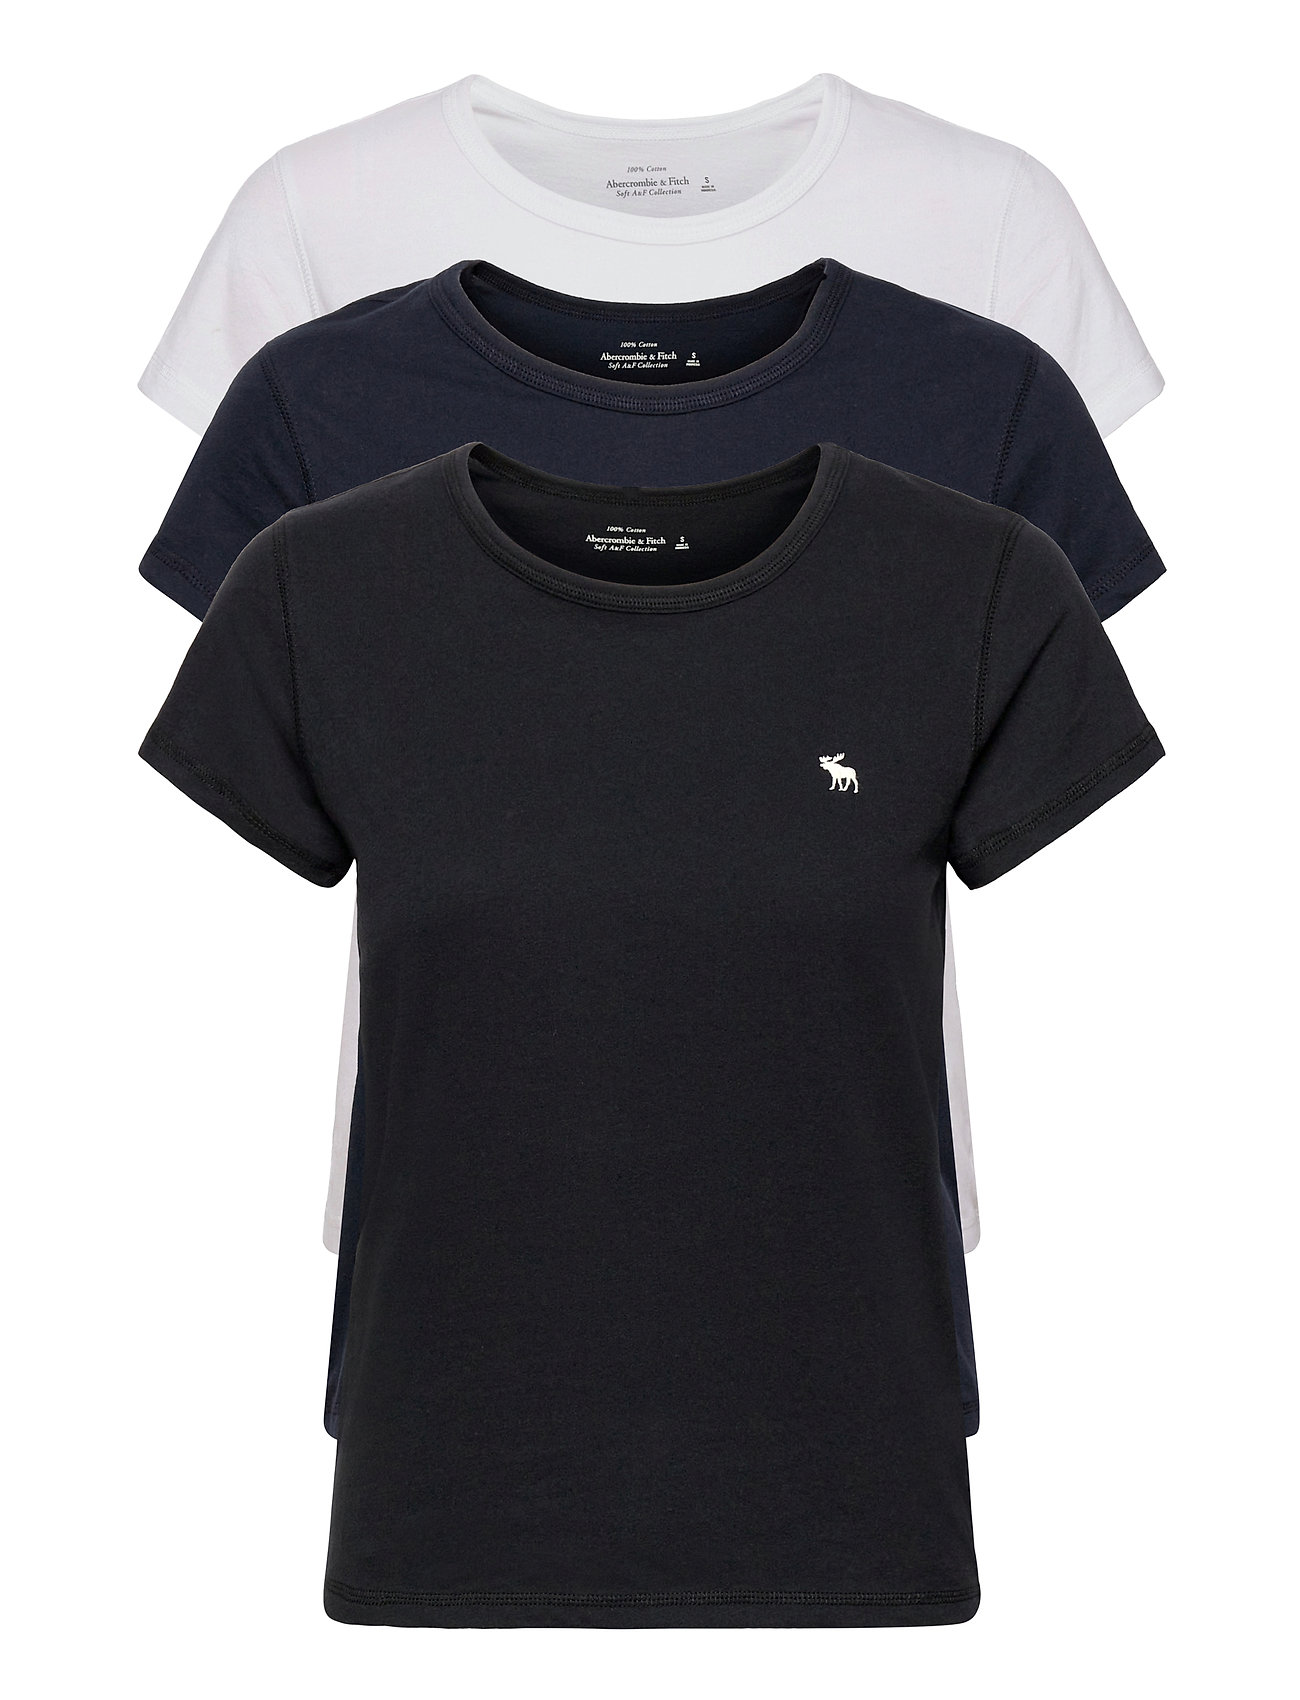 Anf Womens Knits T-shirt Top Blå Abercrombie & Fitch